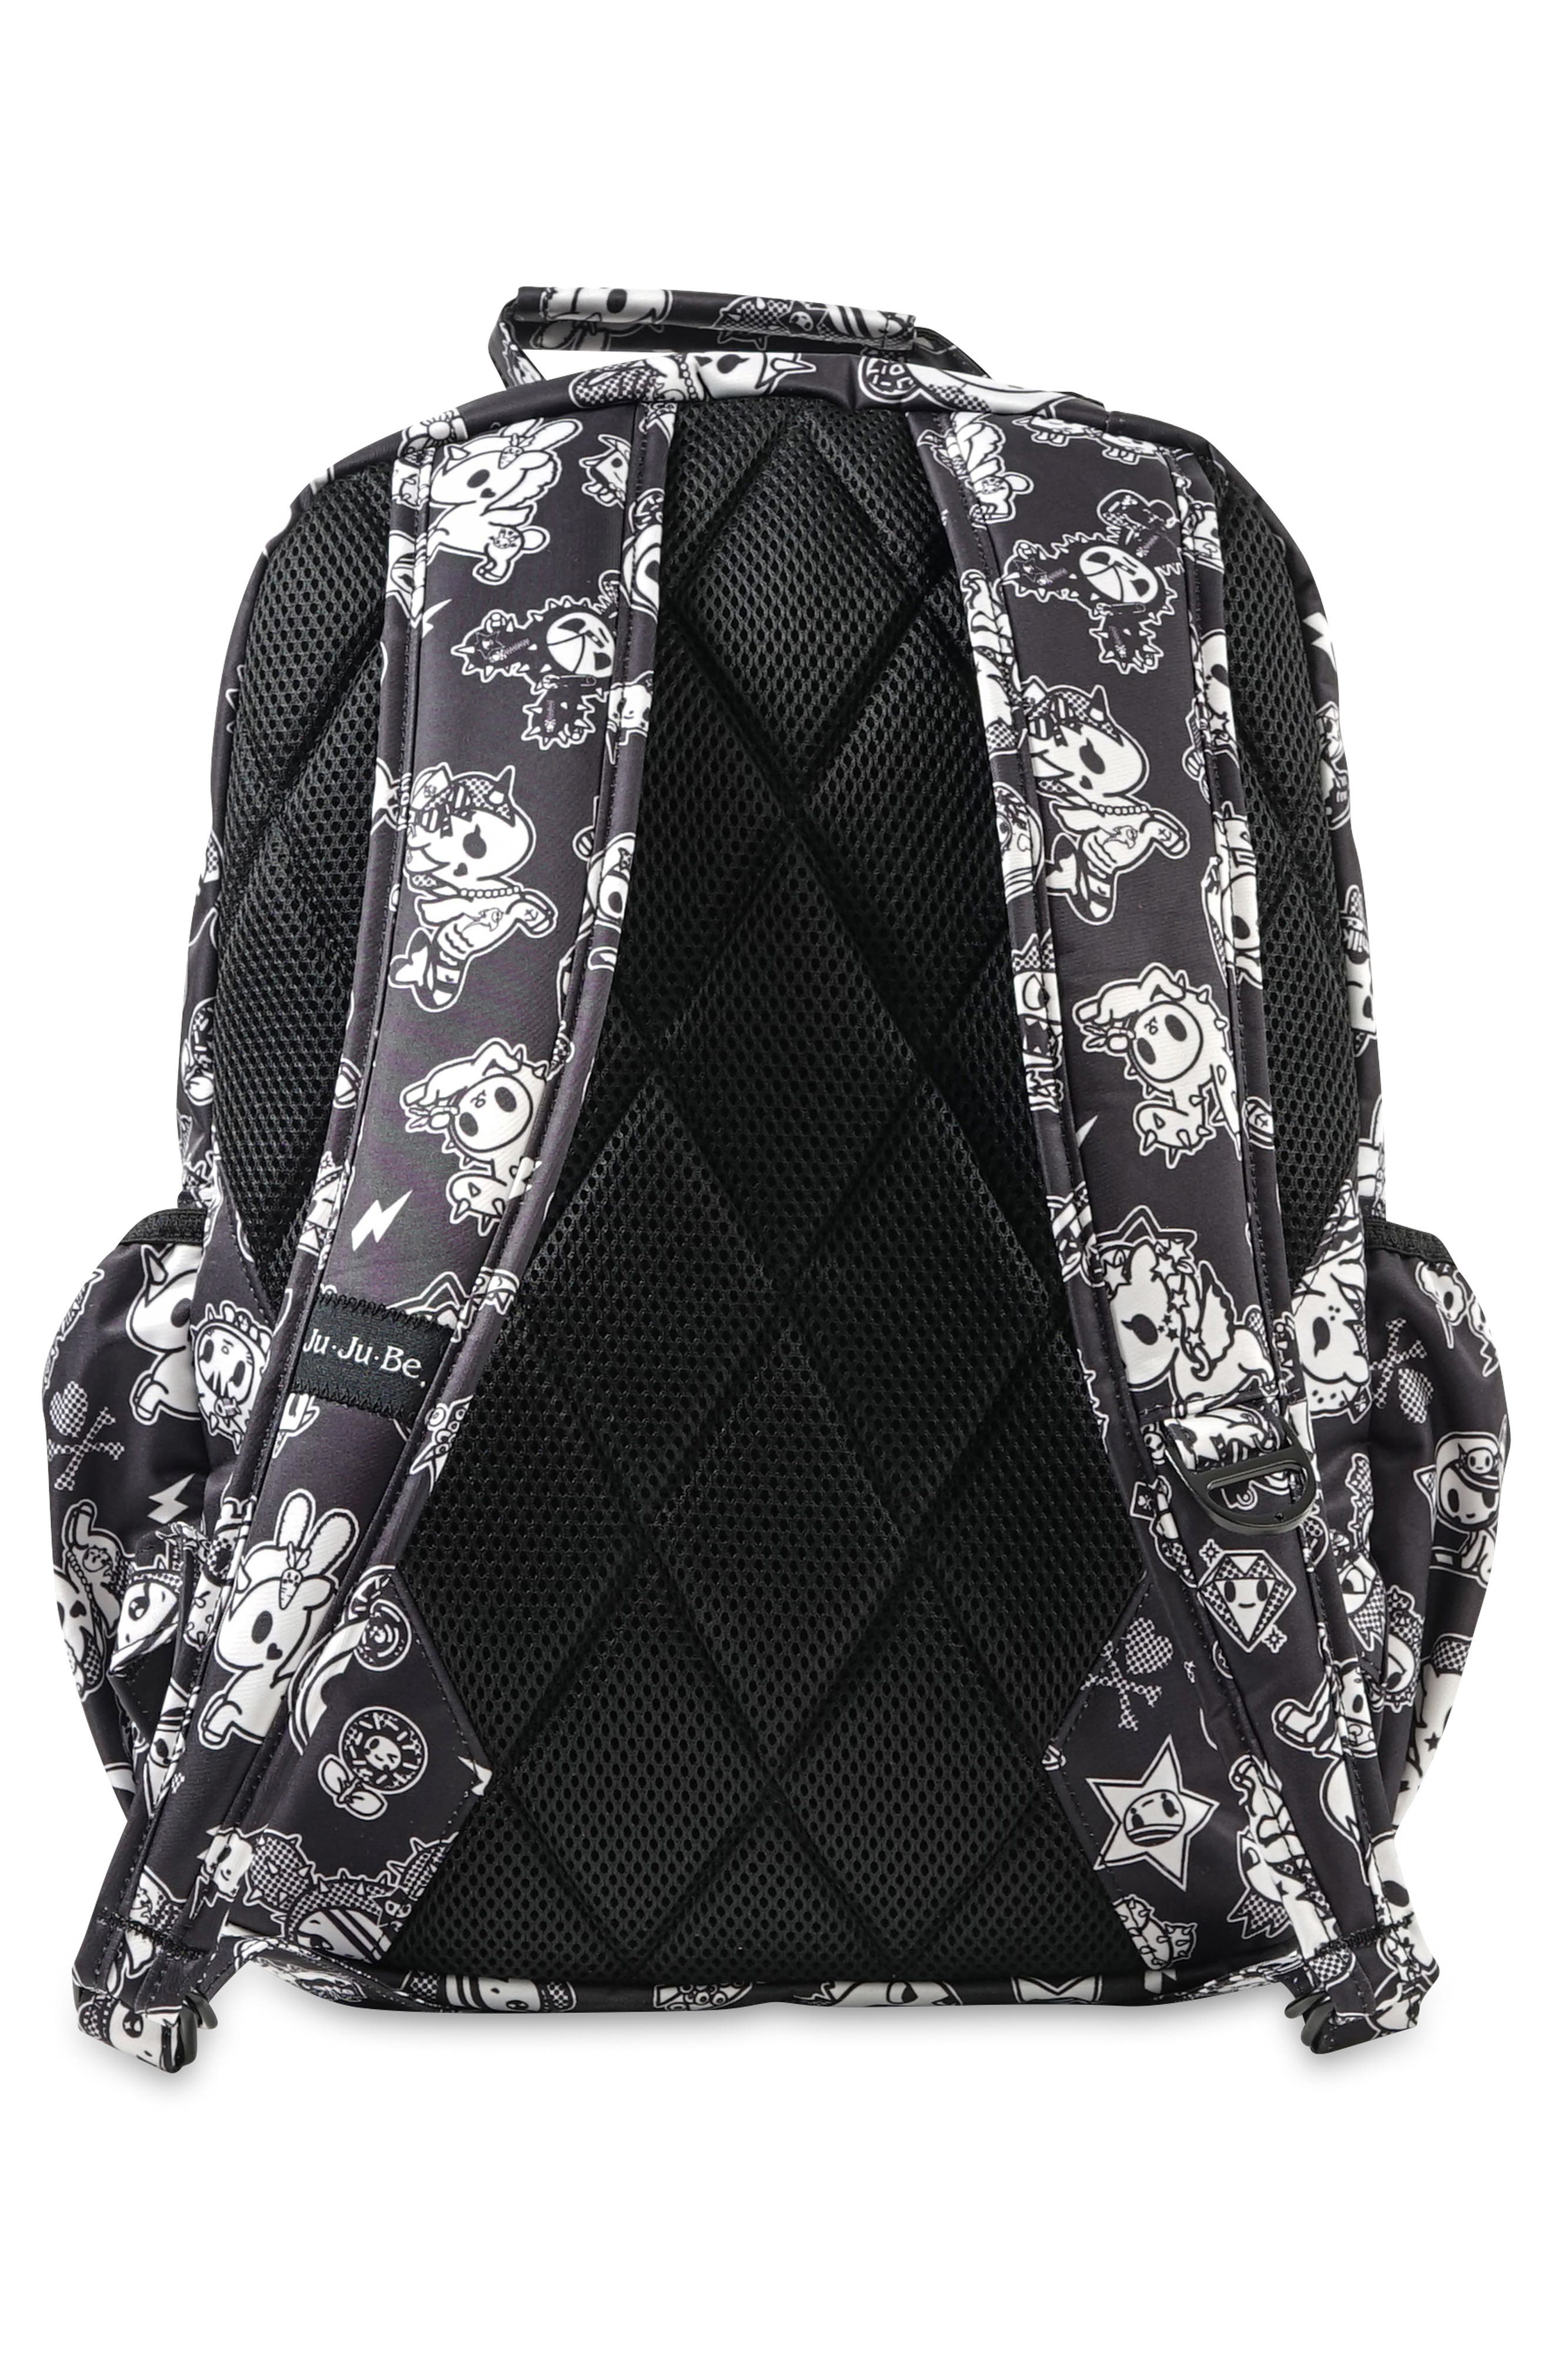 x tokidoki Be Packed Diaper Backpack,                             Alternate thumbnail 2, color,                             009